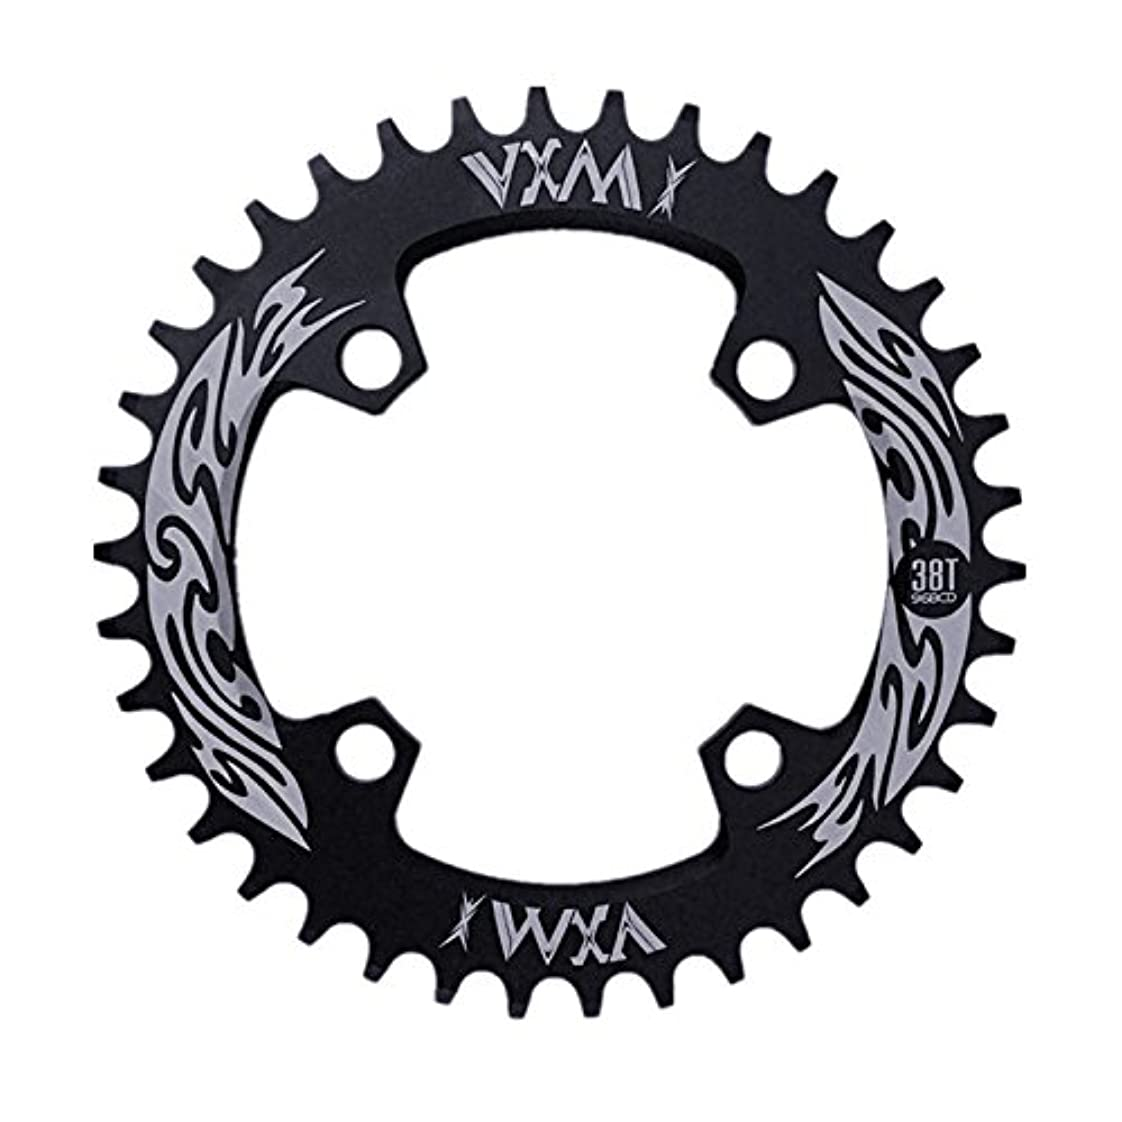 少数眠り失態Propenary - Bicycle Crank & Chainwheel 96BCD 38T Ultralight Alloy Bike Bicycle Narrow Wide Chainring Round Chainwheel Cycle Crankset [ Black ]